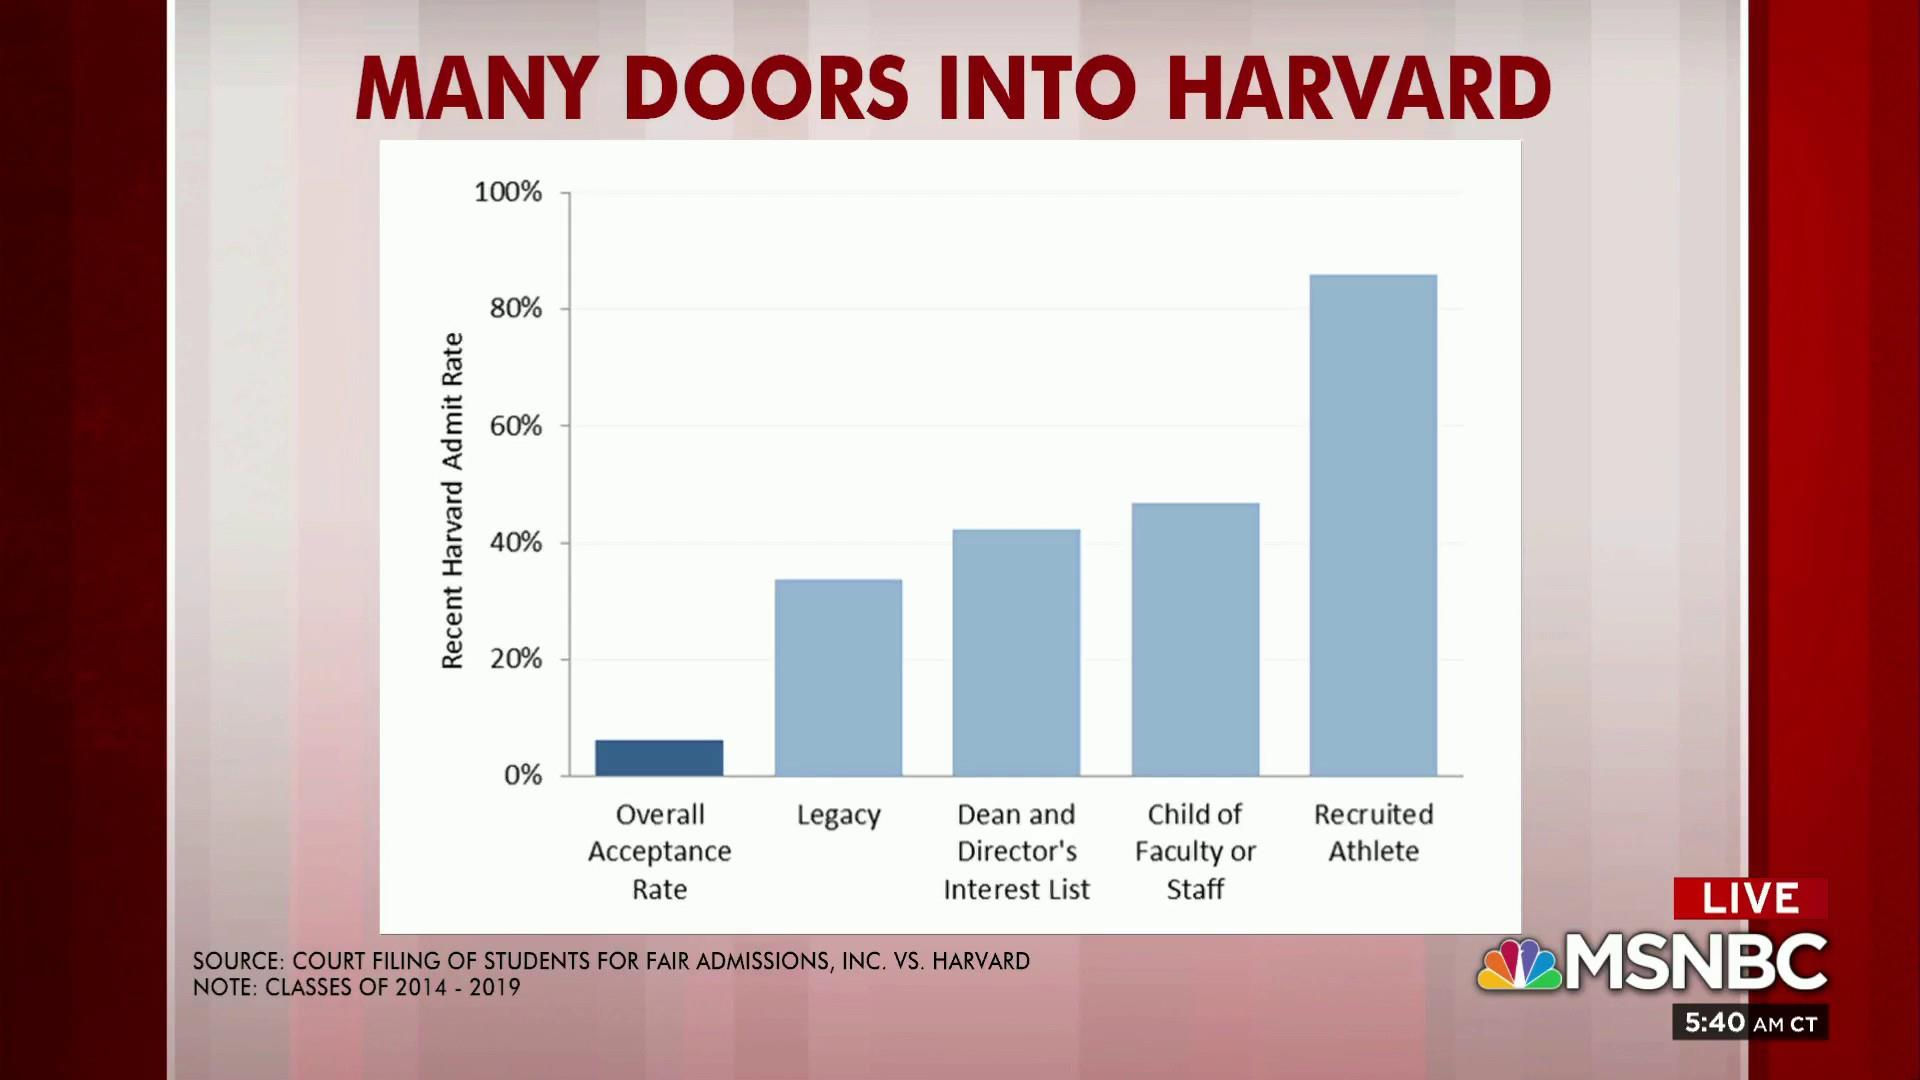 Want to get into Harvard? Being a 'legacy' helps